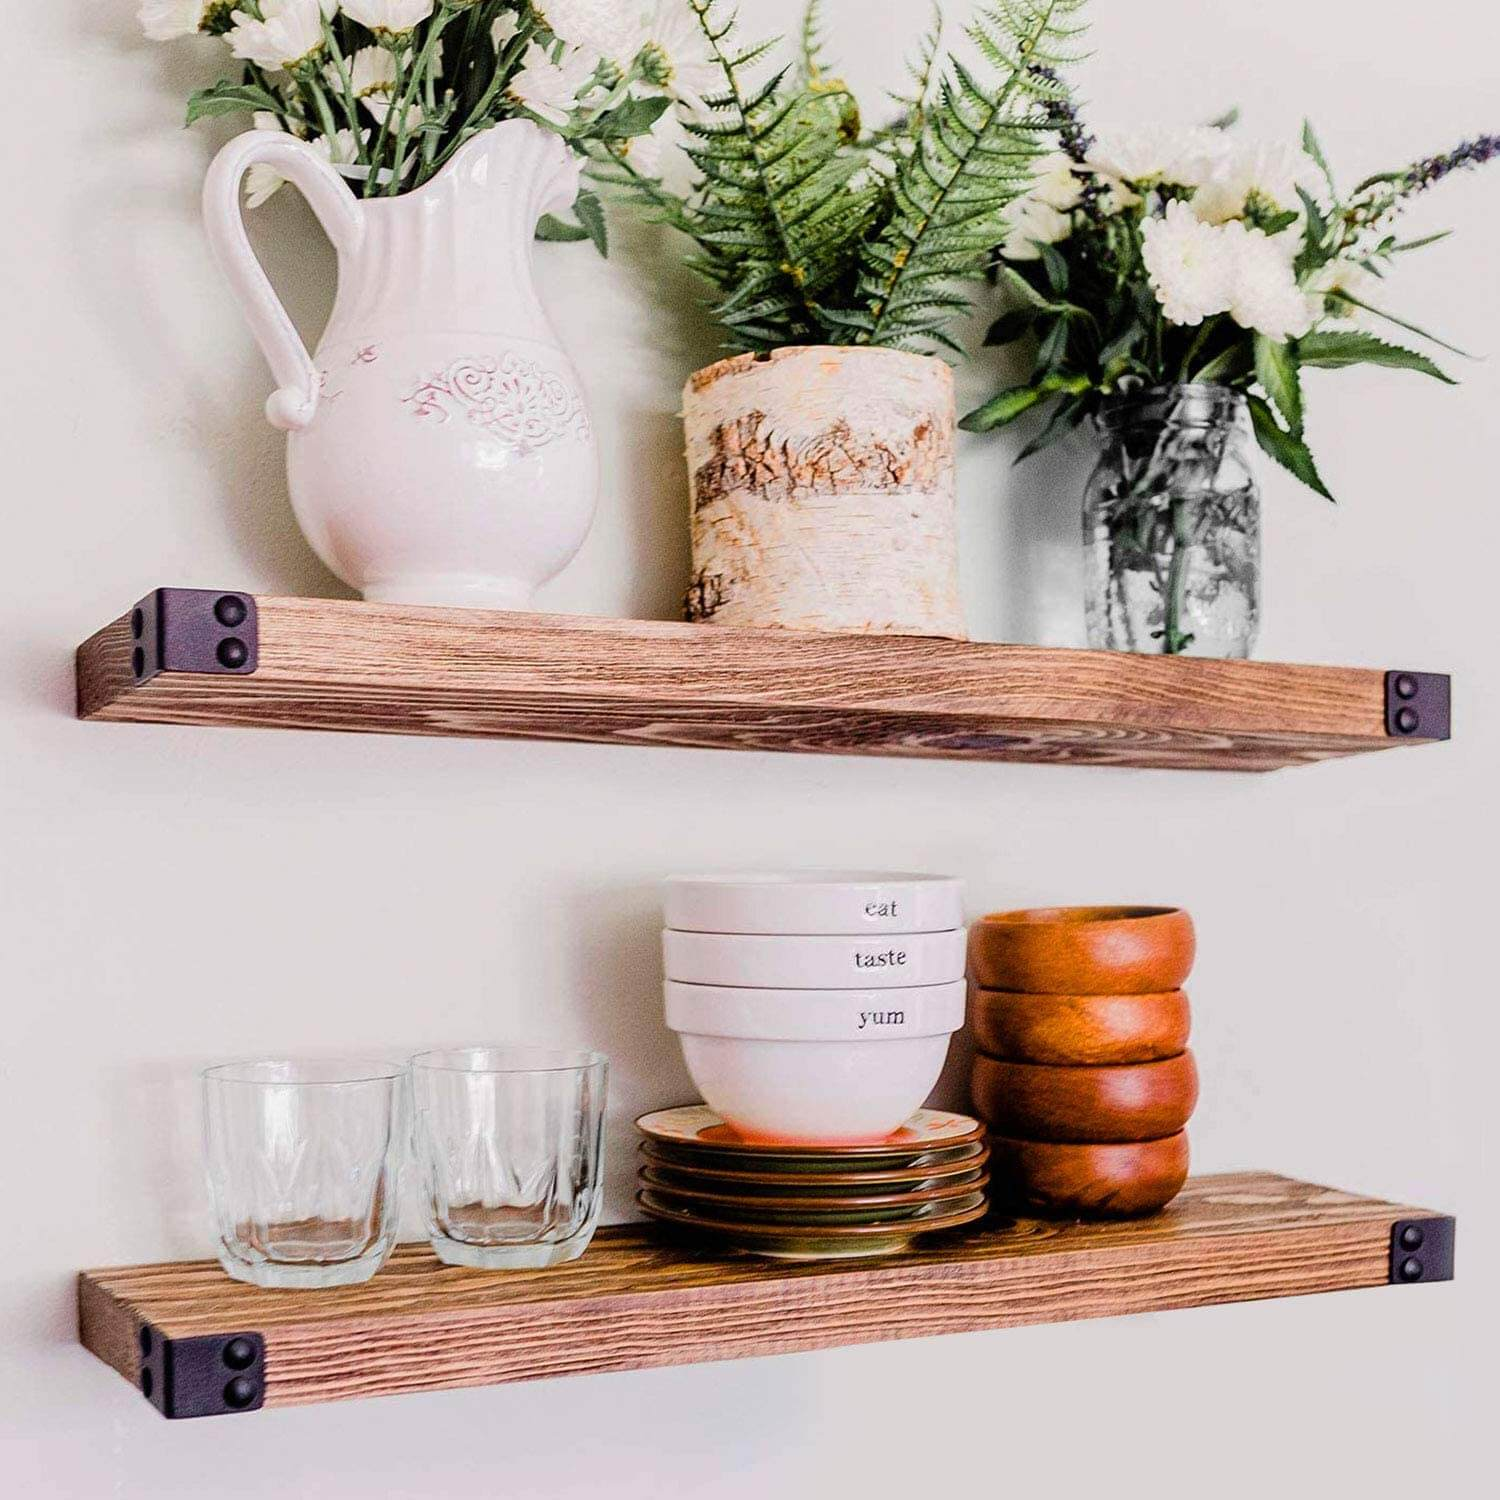 WILLOW & GRACE DESIGNS Floating Shelves for Wall Mounted, Modern Rustic All Wood Wall Shelves, Set of 2